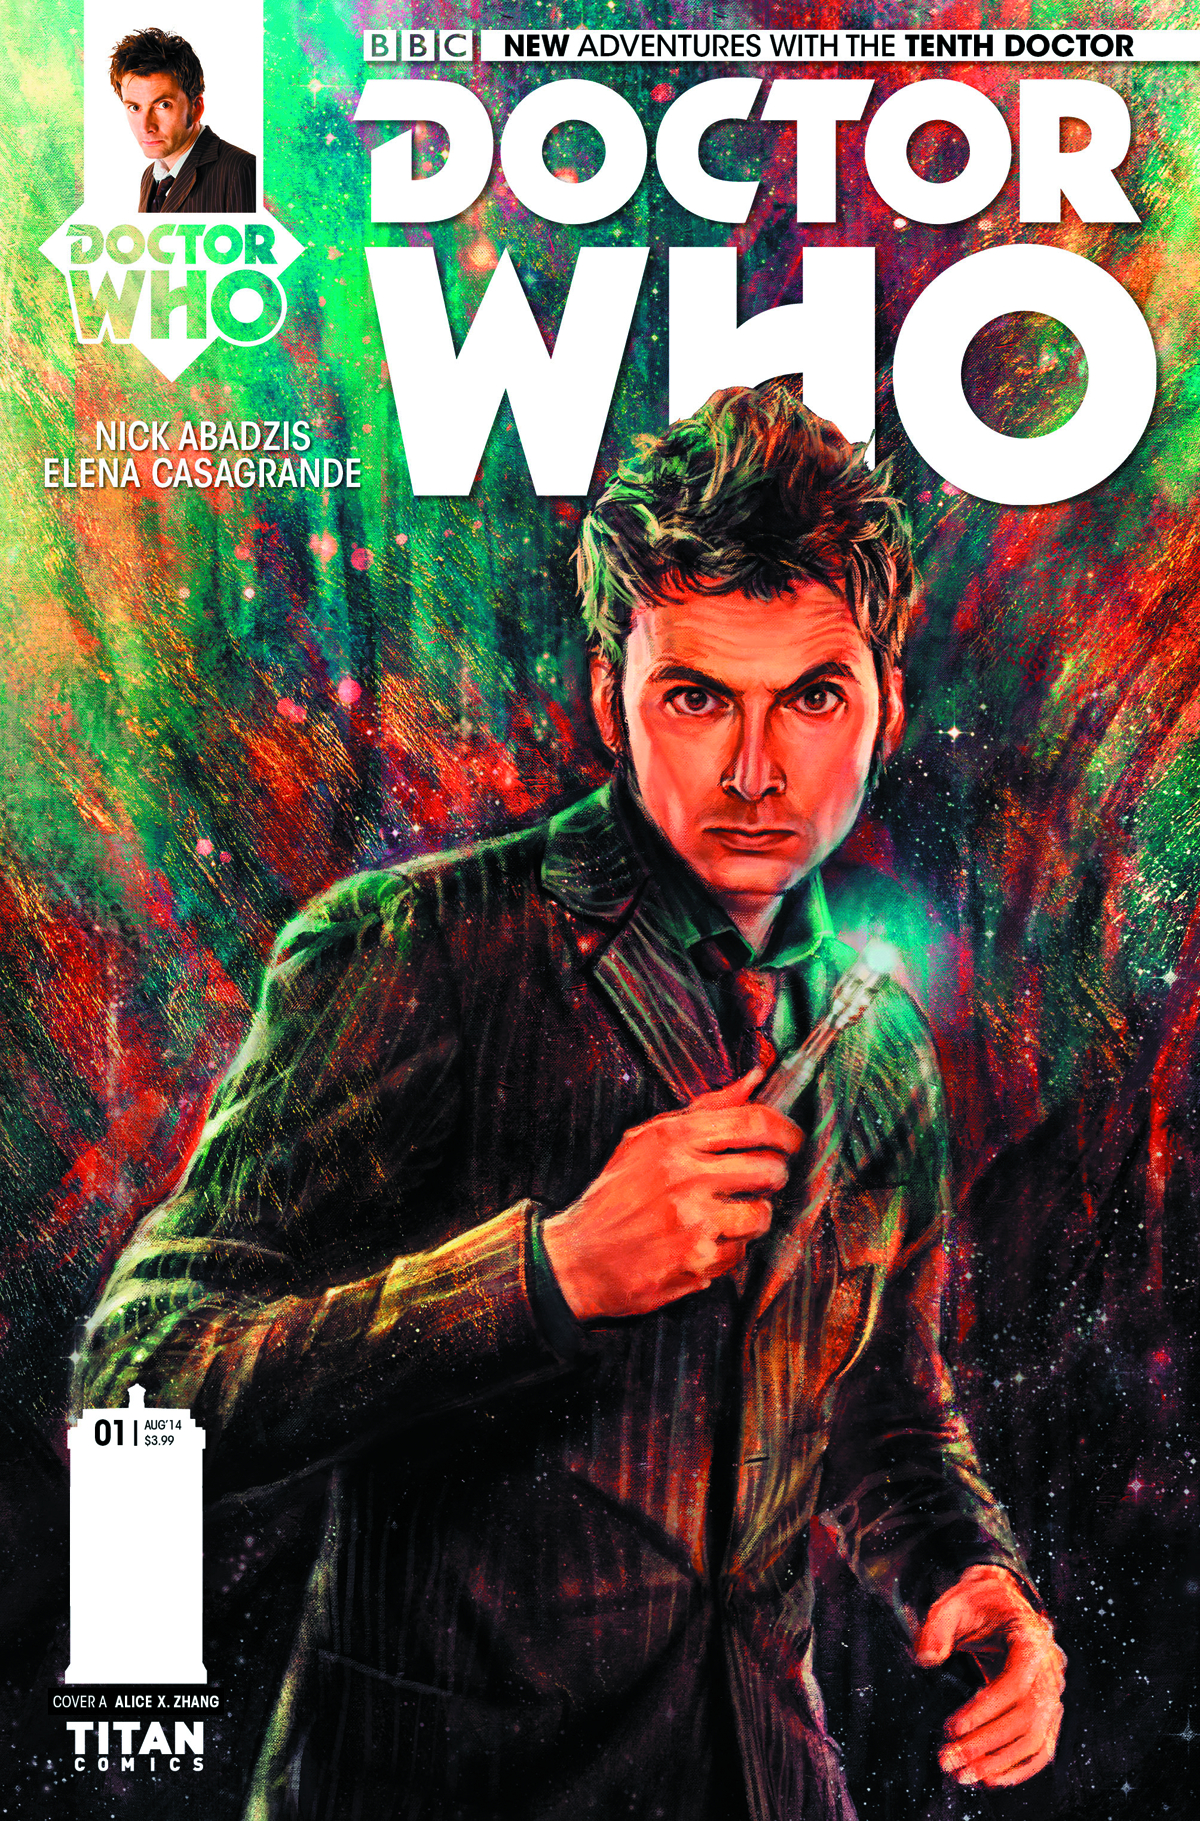 DOCTOR WHO 10TH #1 REG ZHANG